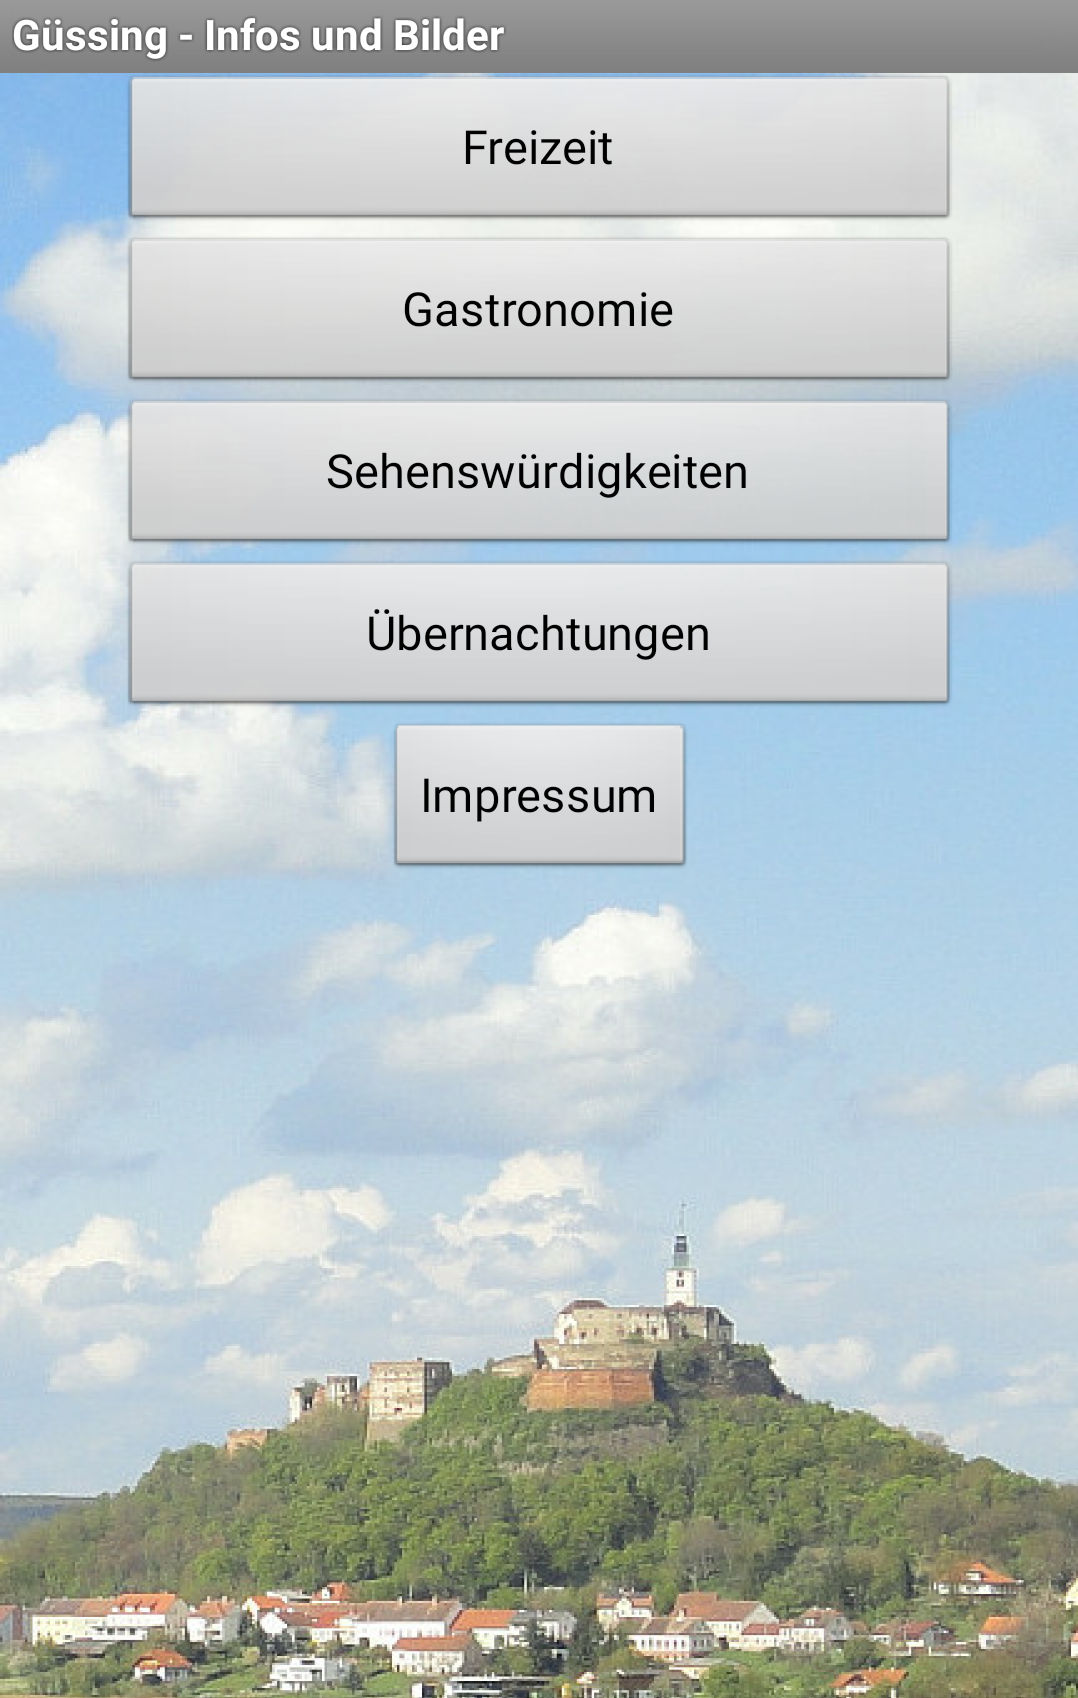 Güssing-App Screenshot